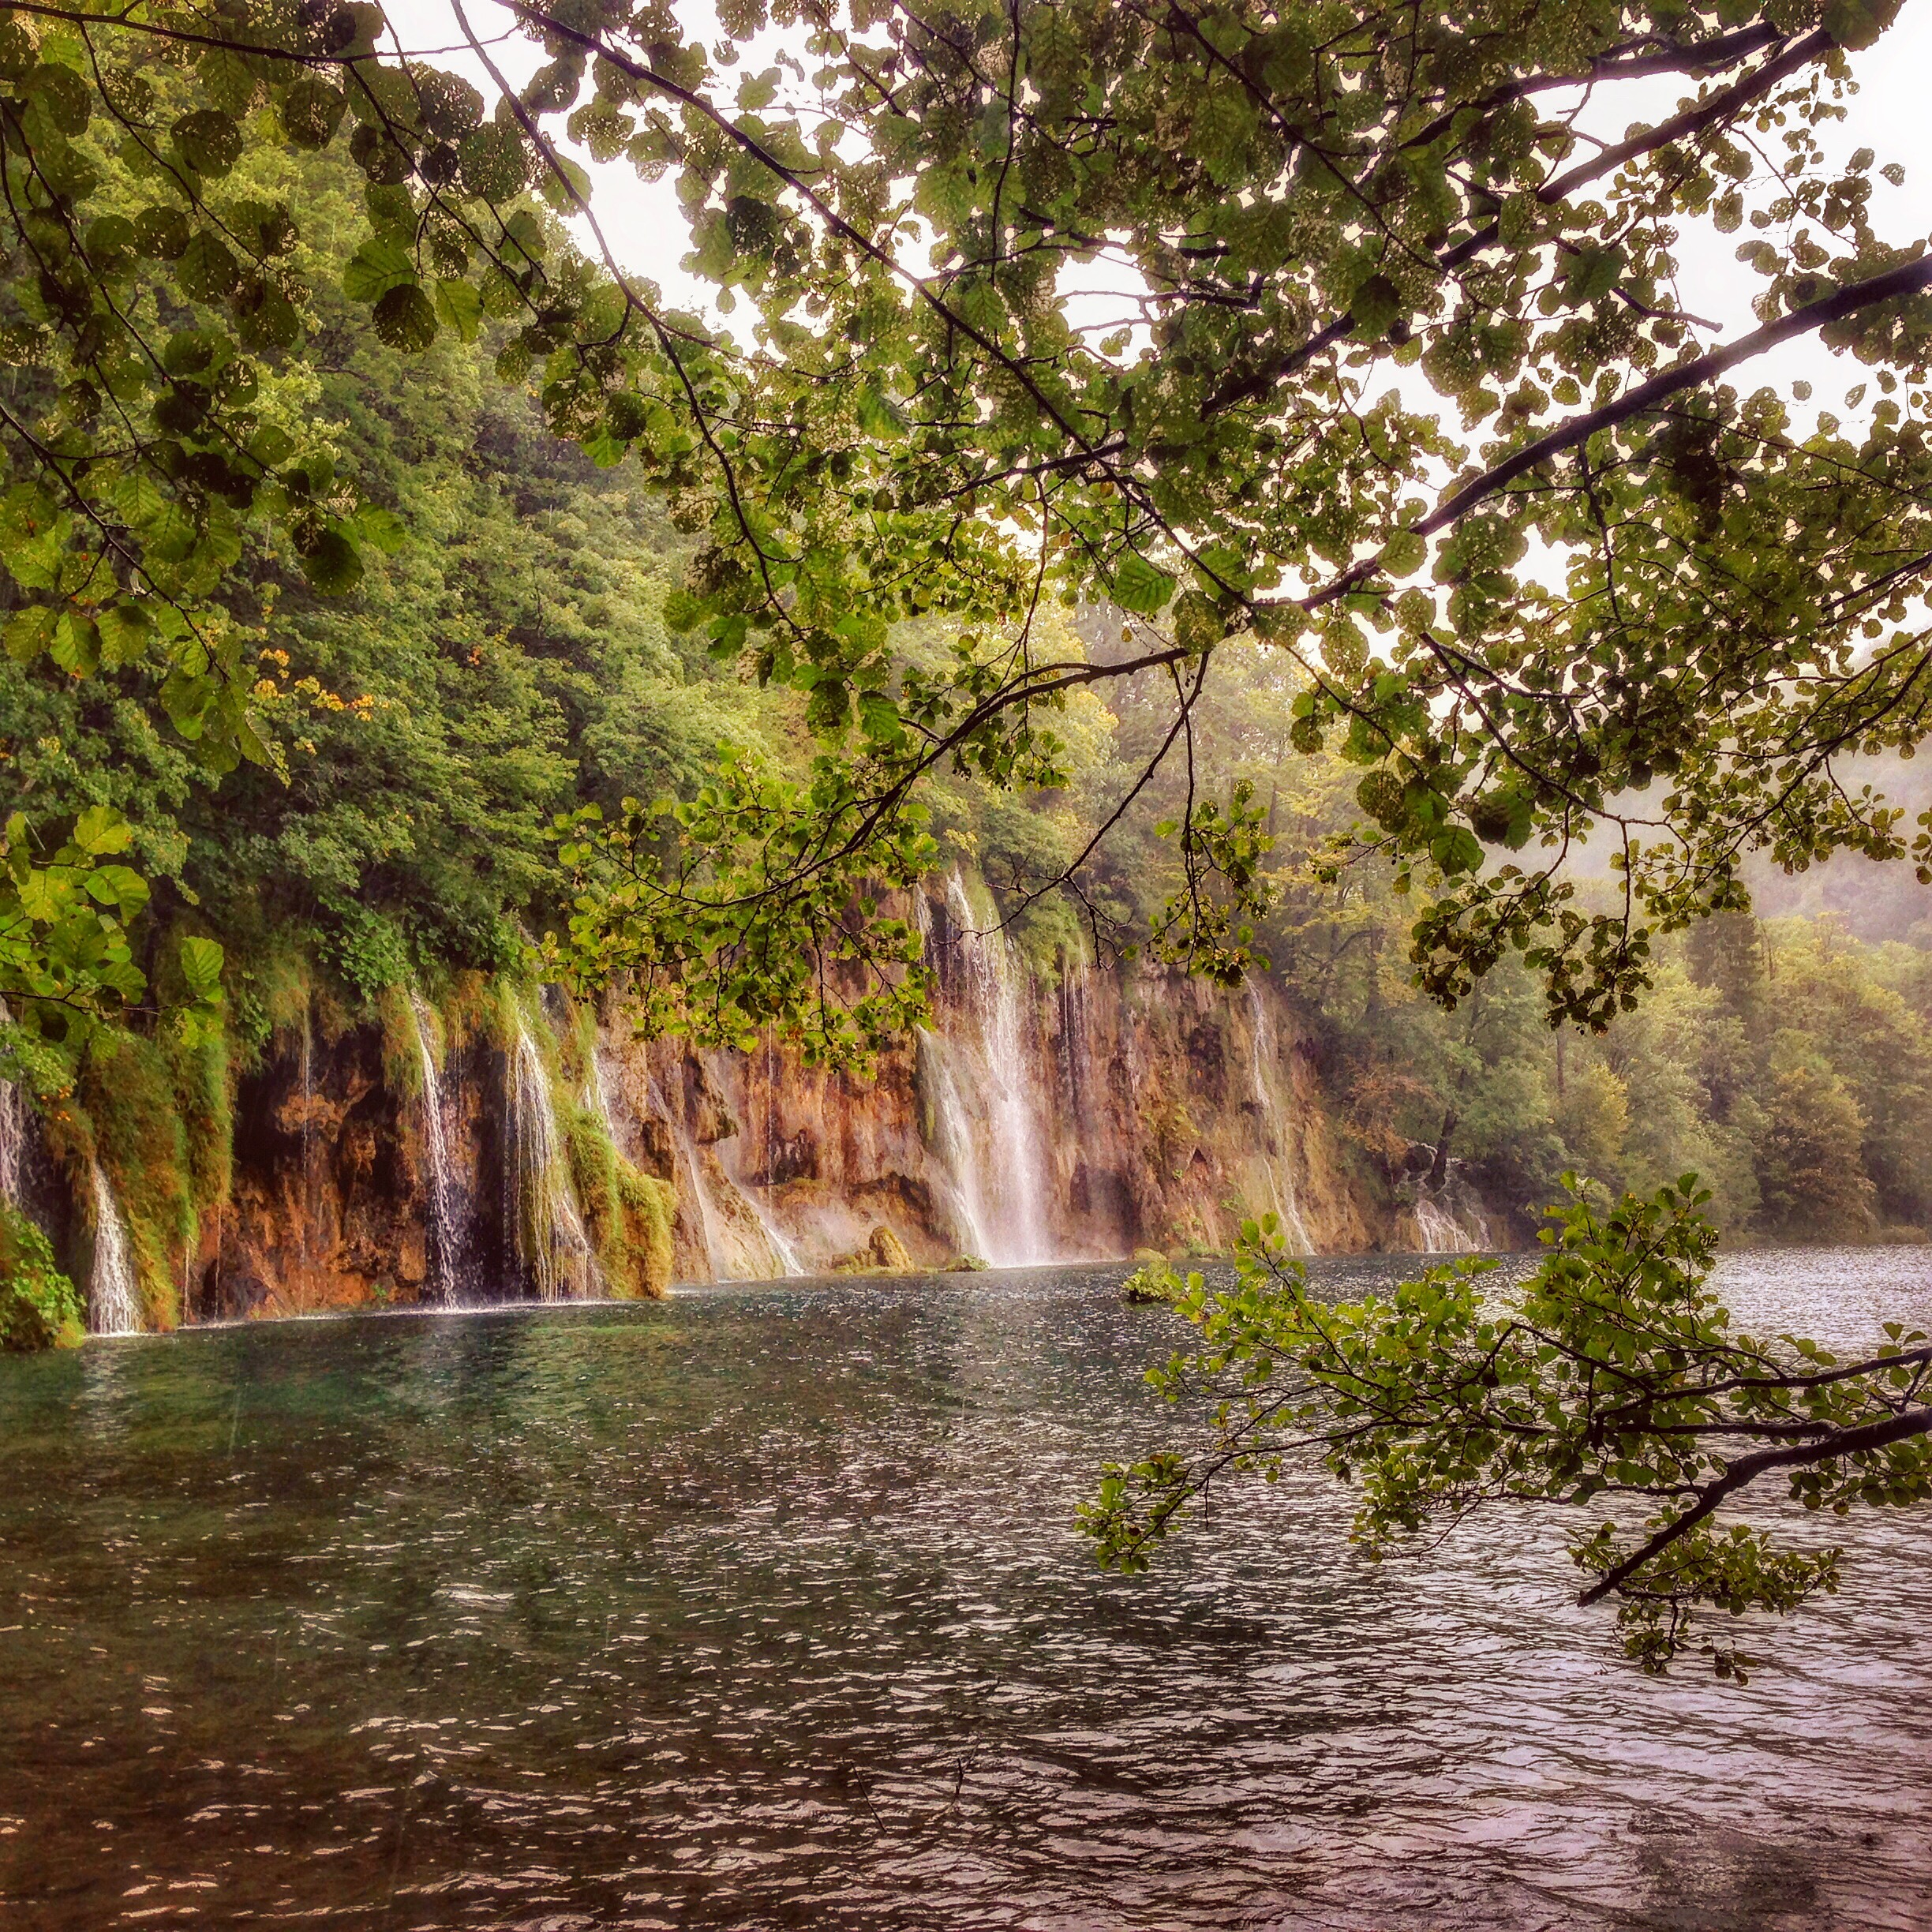 Visiting Croatia in September - Plitvice Lakes